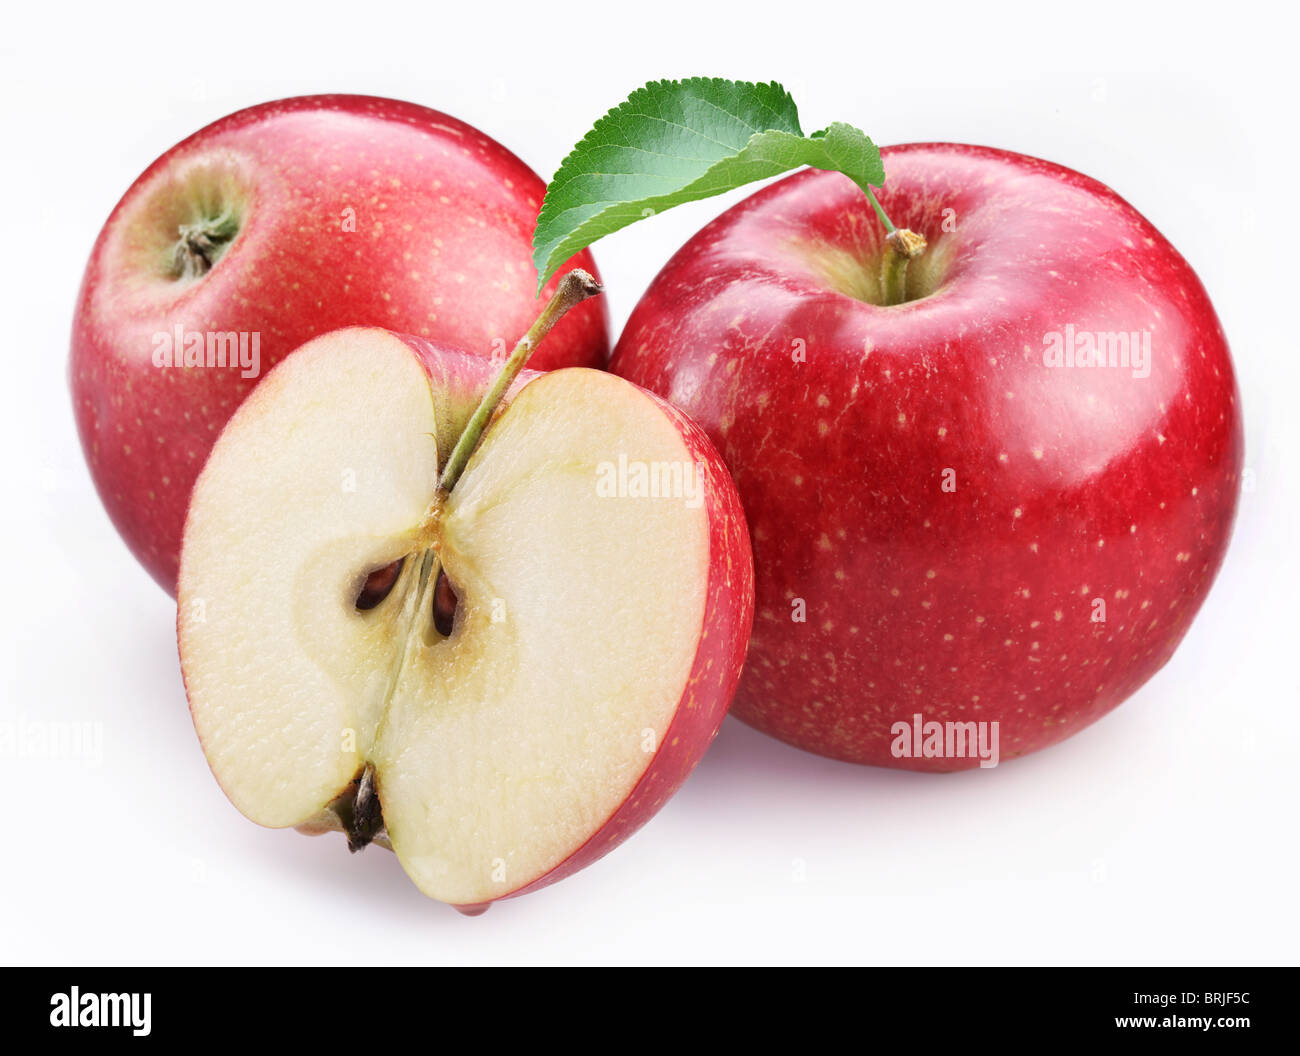 Two ripe red apples and half of apple. Isolated on a white background. - Stock Image